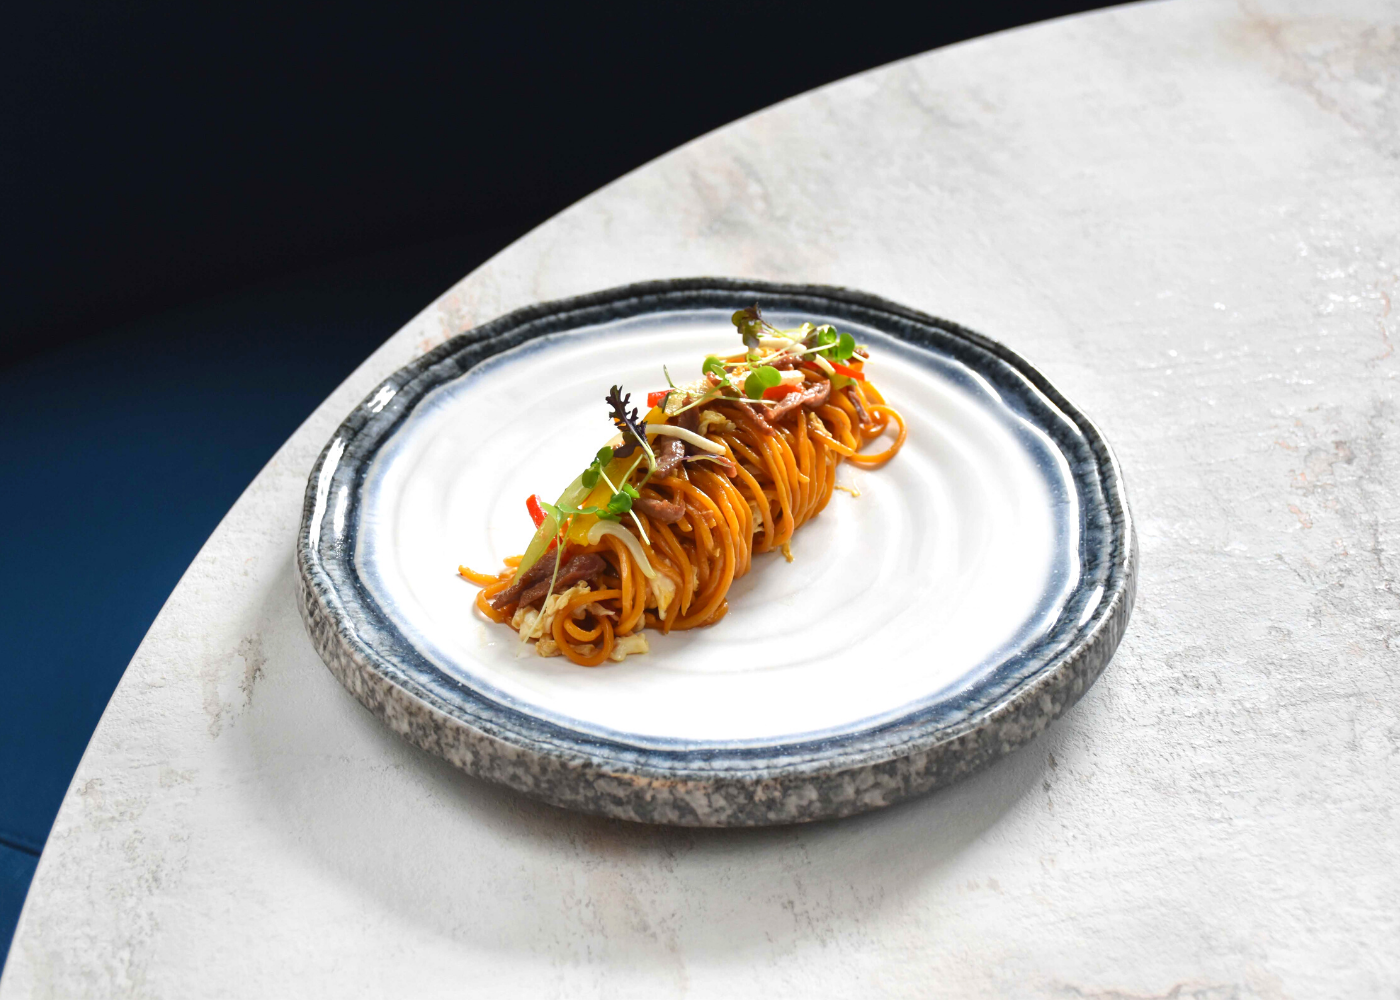 Slurp up this wok hei beef pasta. Photography: Mimi at the Riverhouse